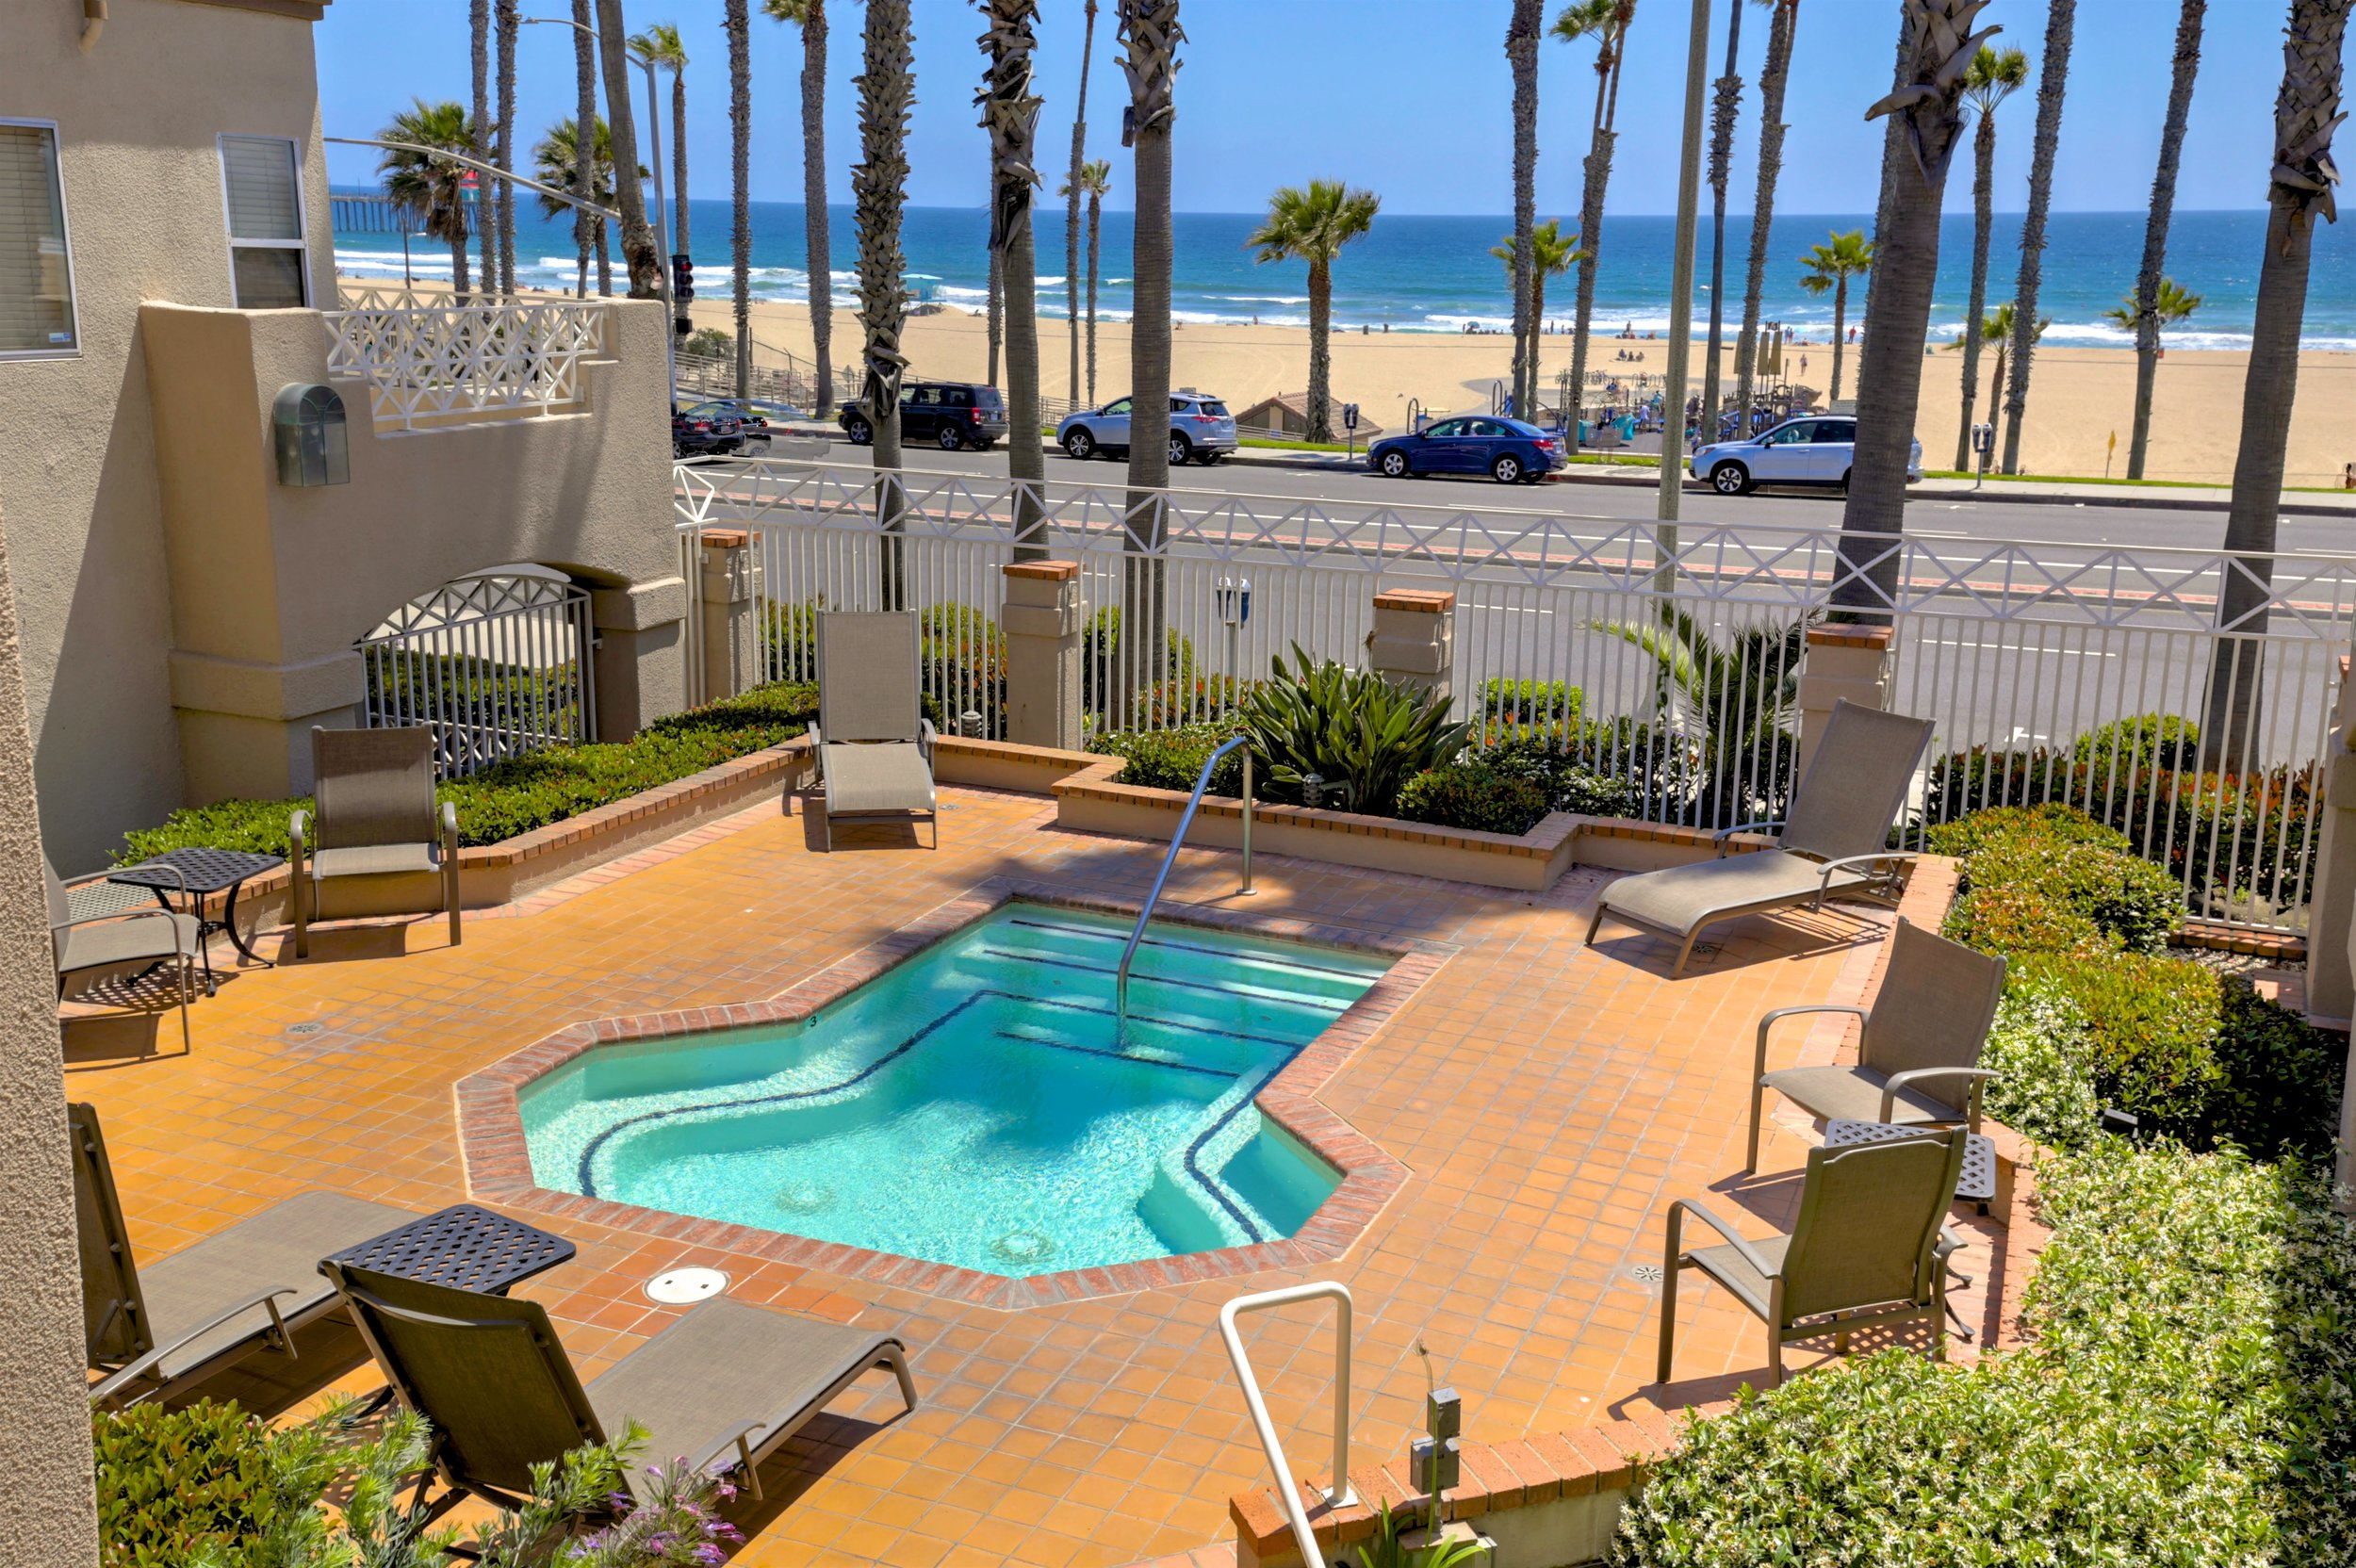 - Beautiful Beach-Front home in Faire RivageSOLD by MARIA X for $670,000900 PCH Unit 207 Huntington Beach2 Bedrooms/1 Bath/ 995 sq. ft.